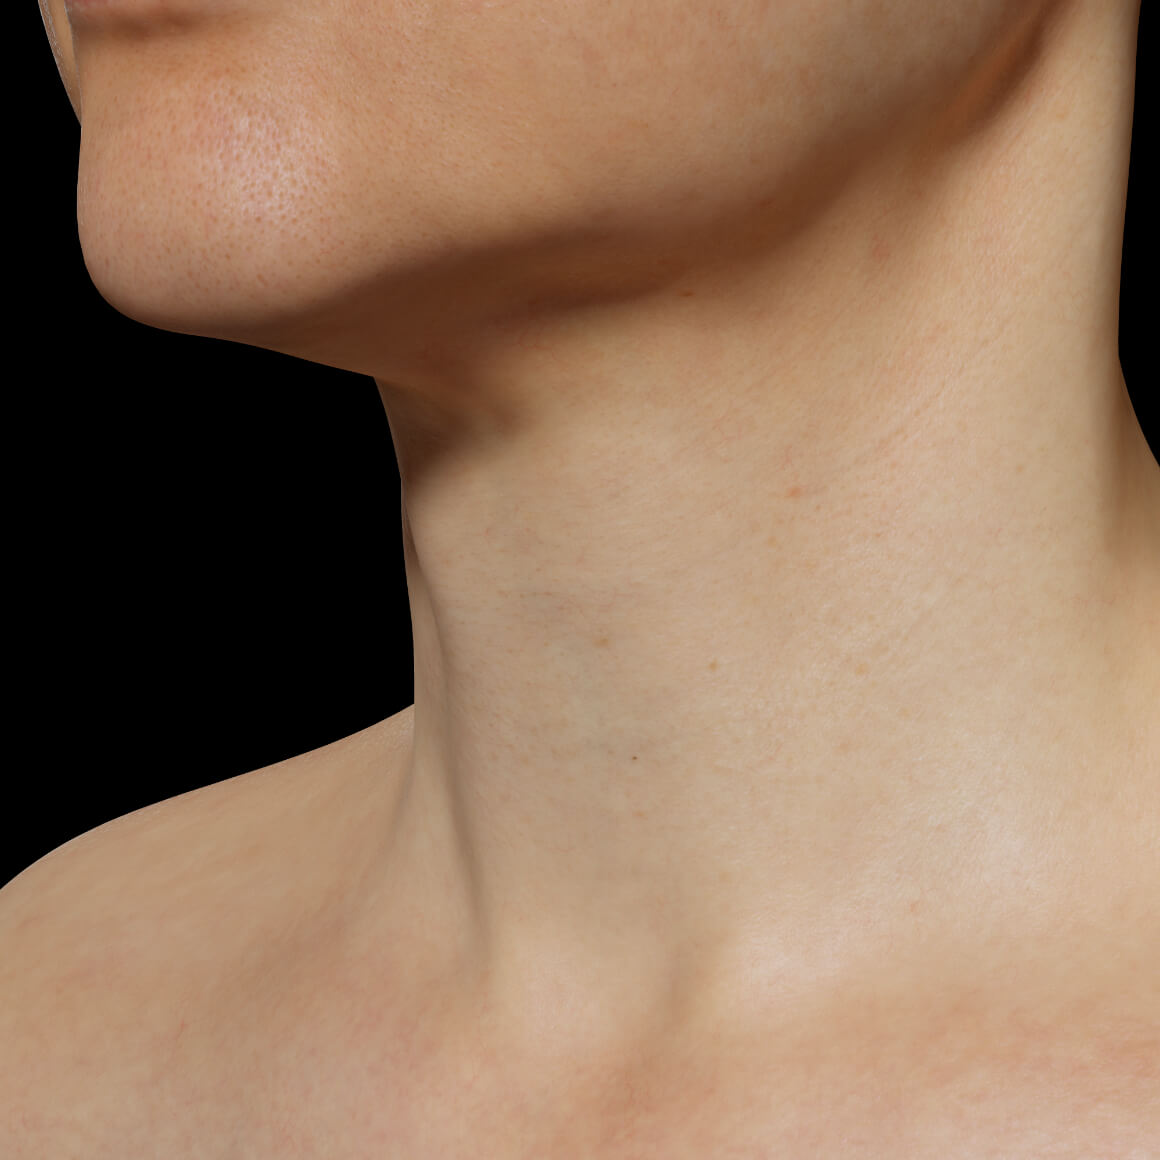 A female patient at Clinique Chloé positioned at an angle after Fotona 4D laser treatments for skin tightening of the neck